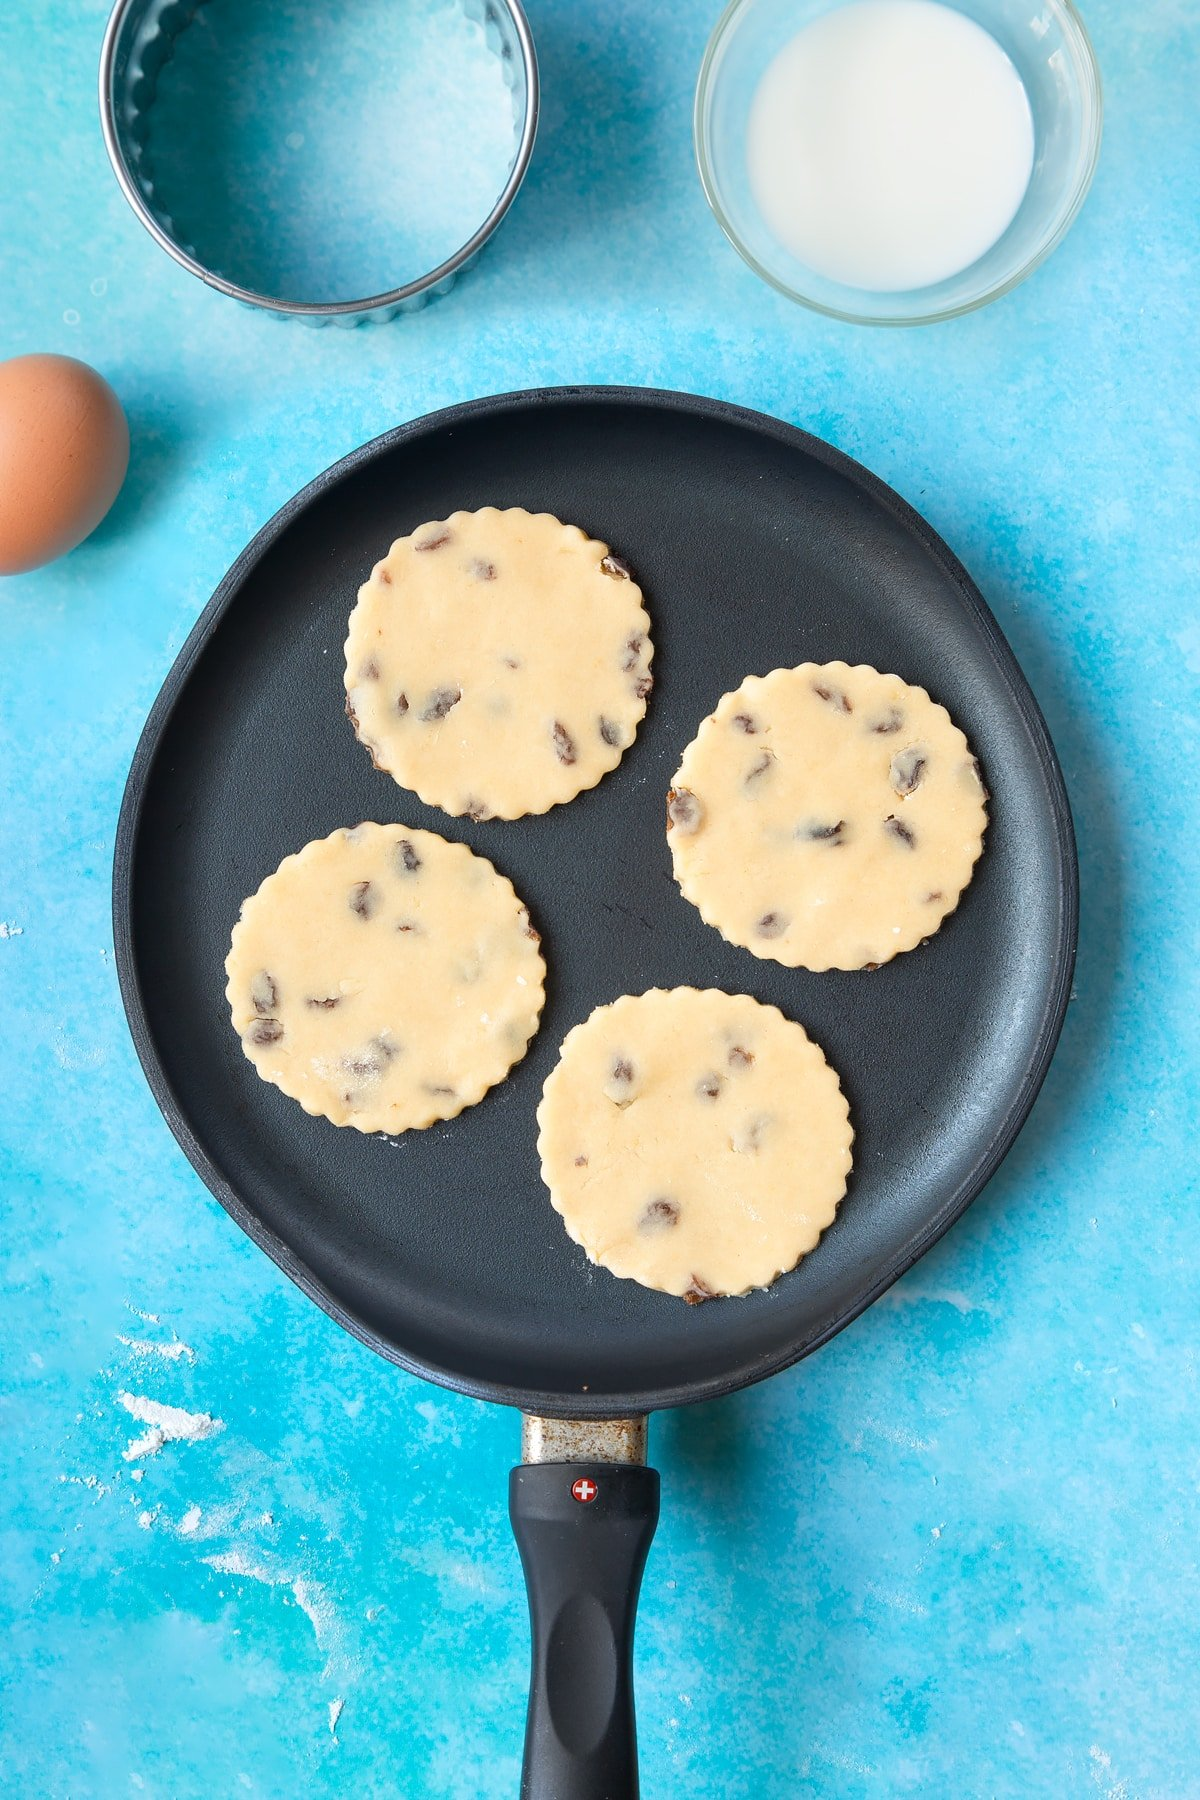 Welsh cake dough rounds cooking in a hot, flat pan.